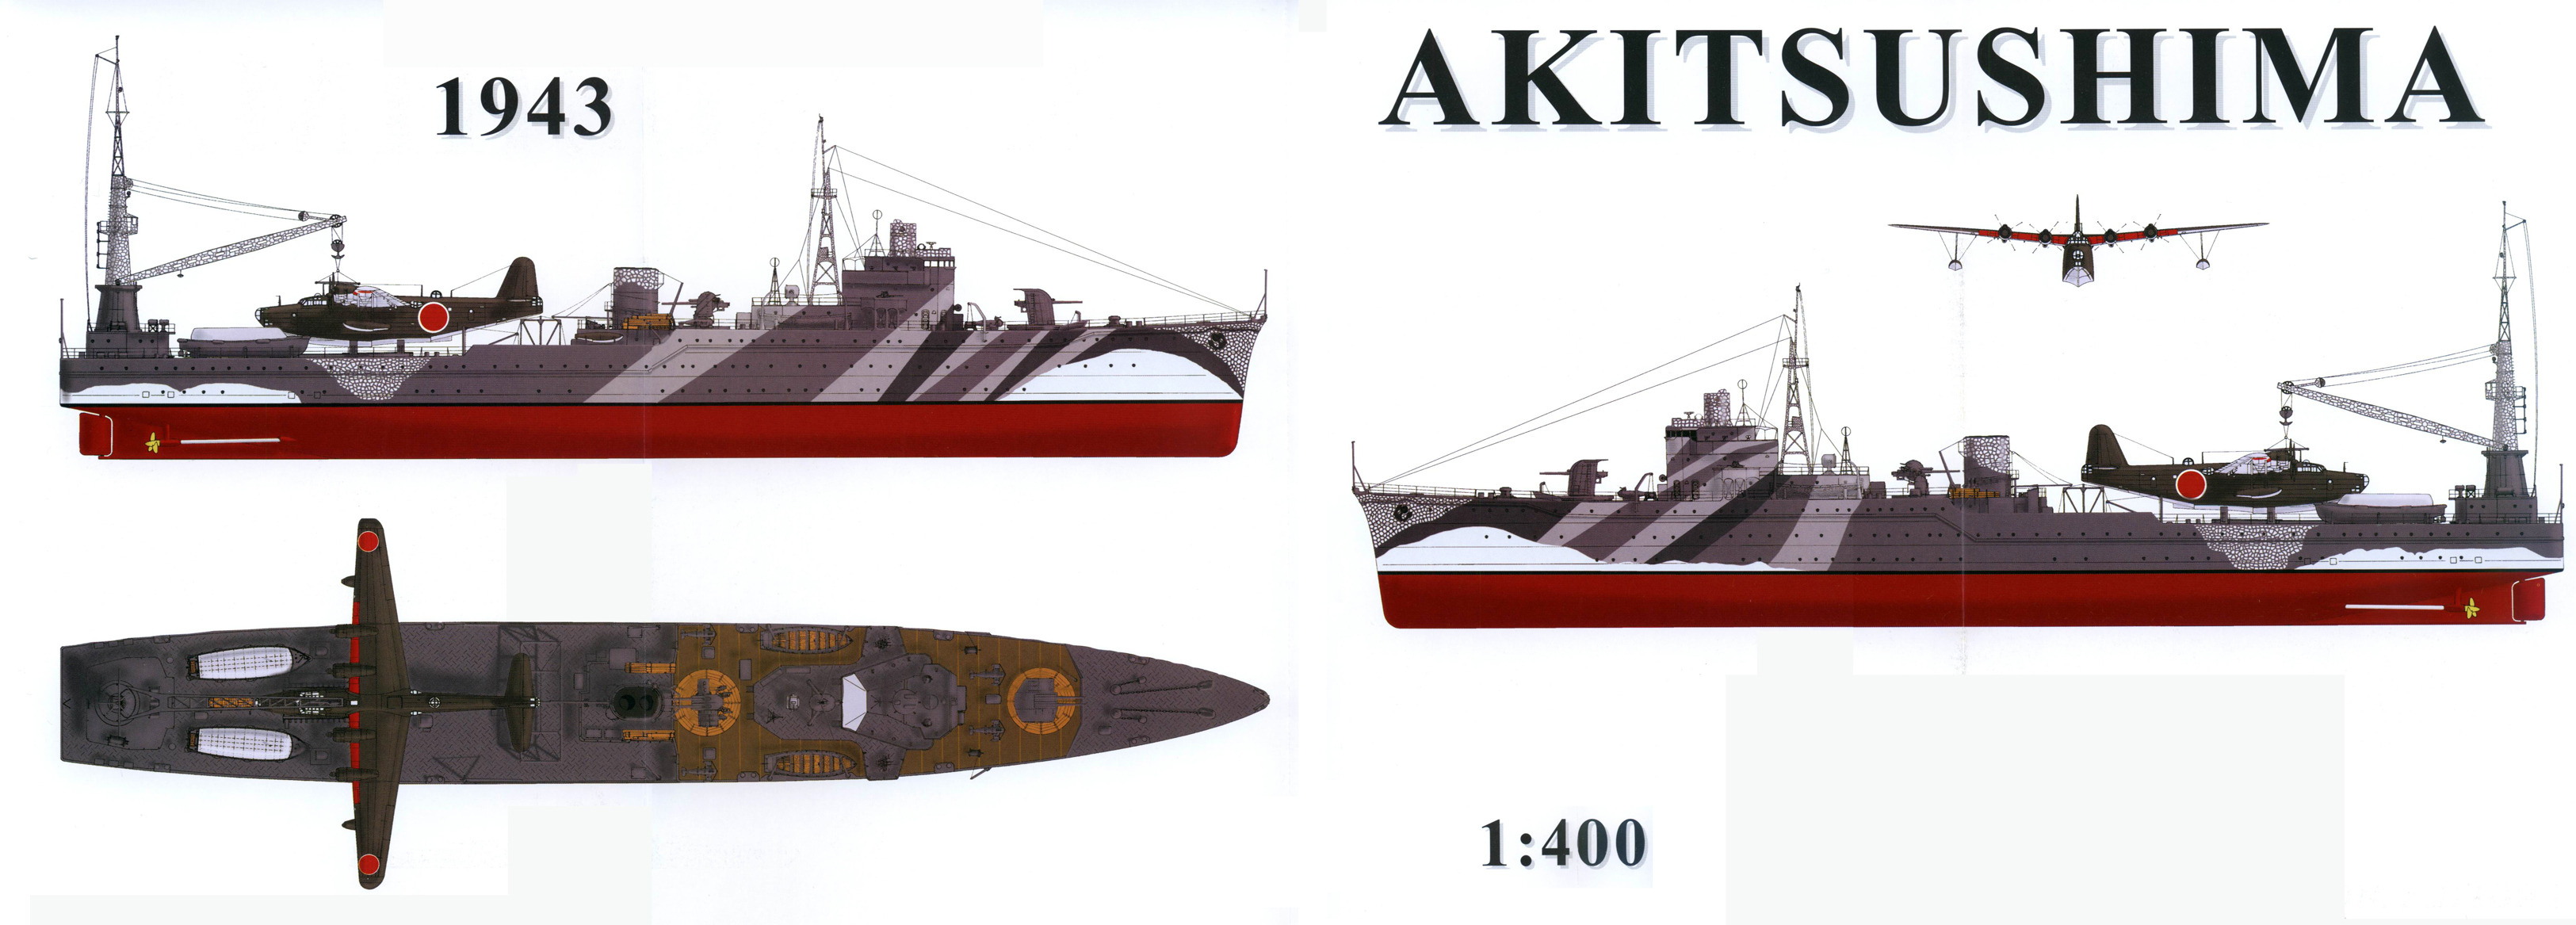 0 IJN Japanese seaplane carrier Akitushima scale drawing 0A